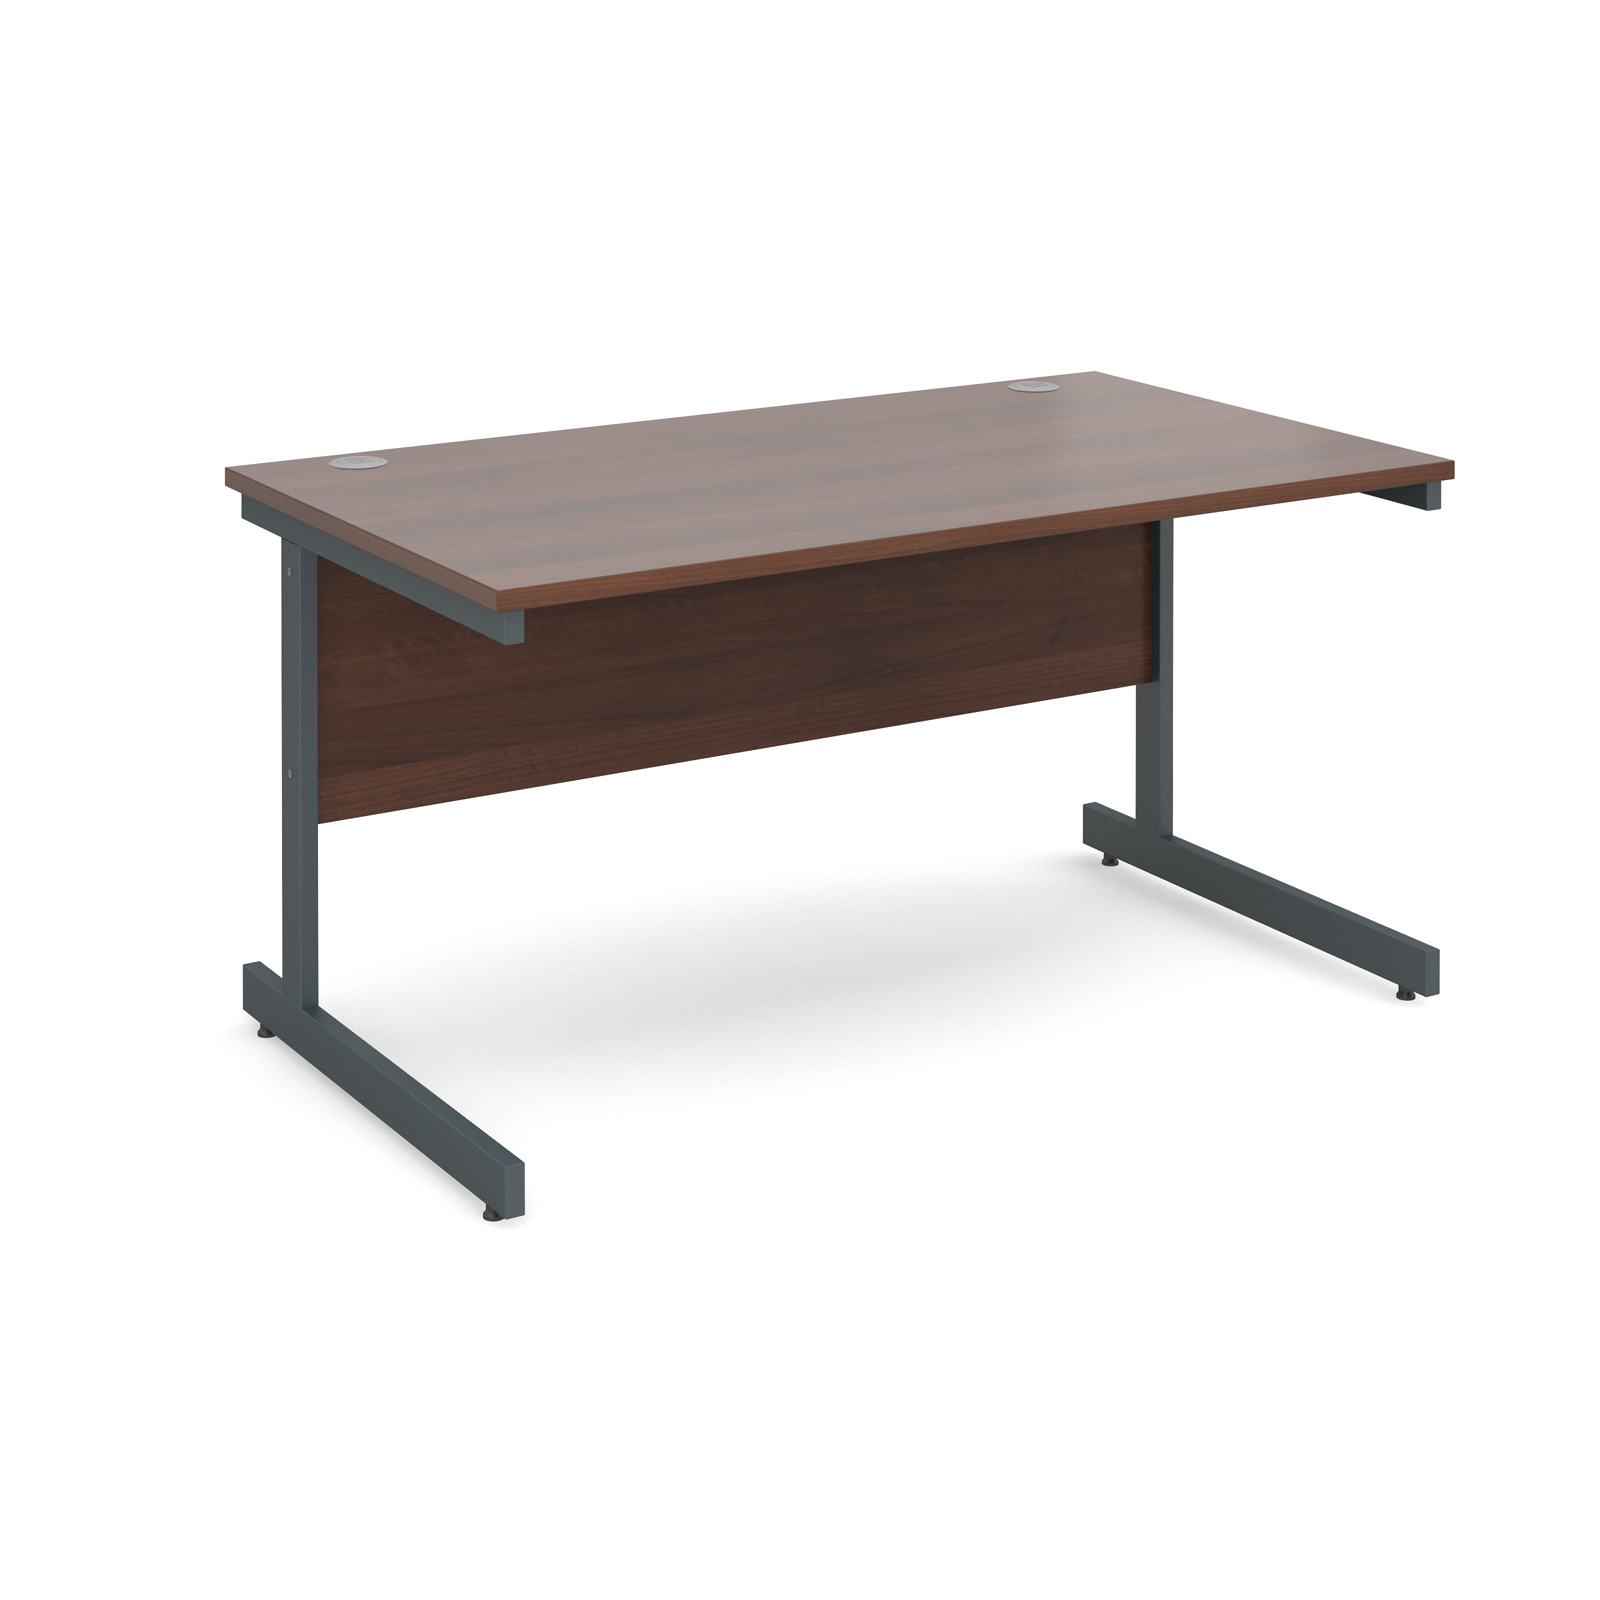 Contract 25 straight desk 1400mm x 800mm - graphite cantilever frame, walnut top